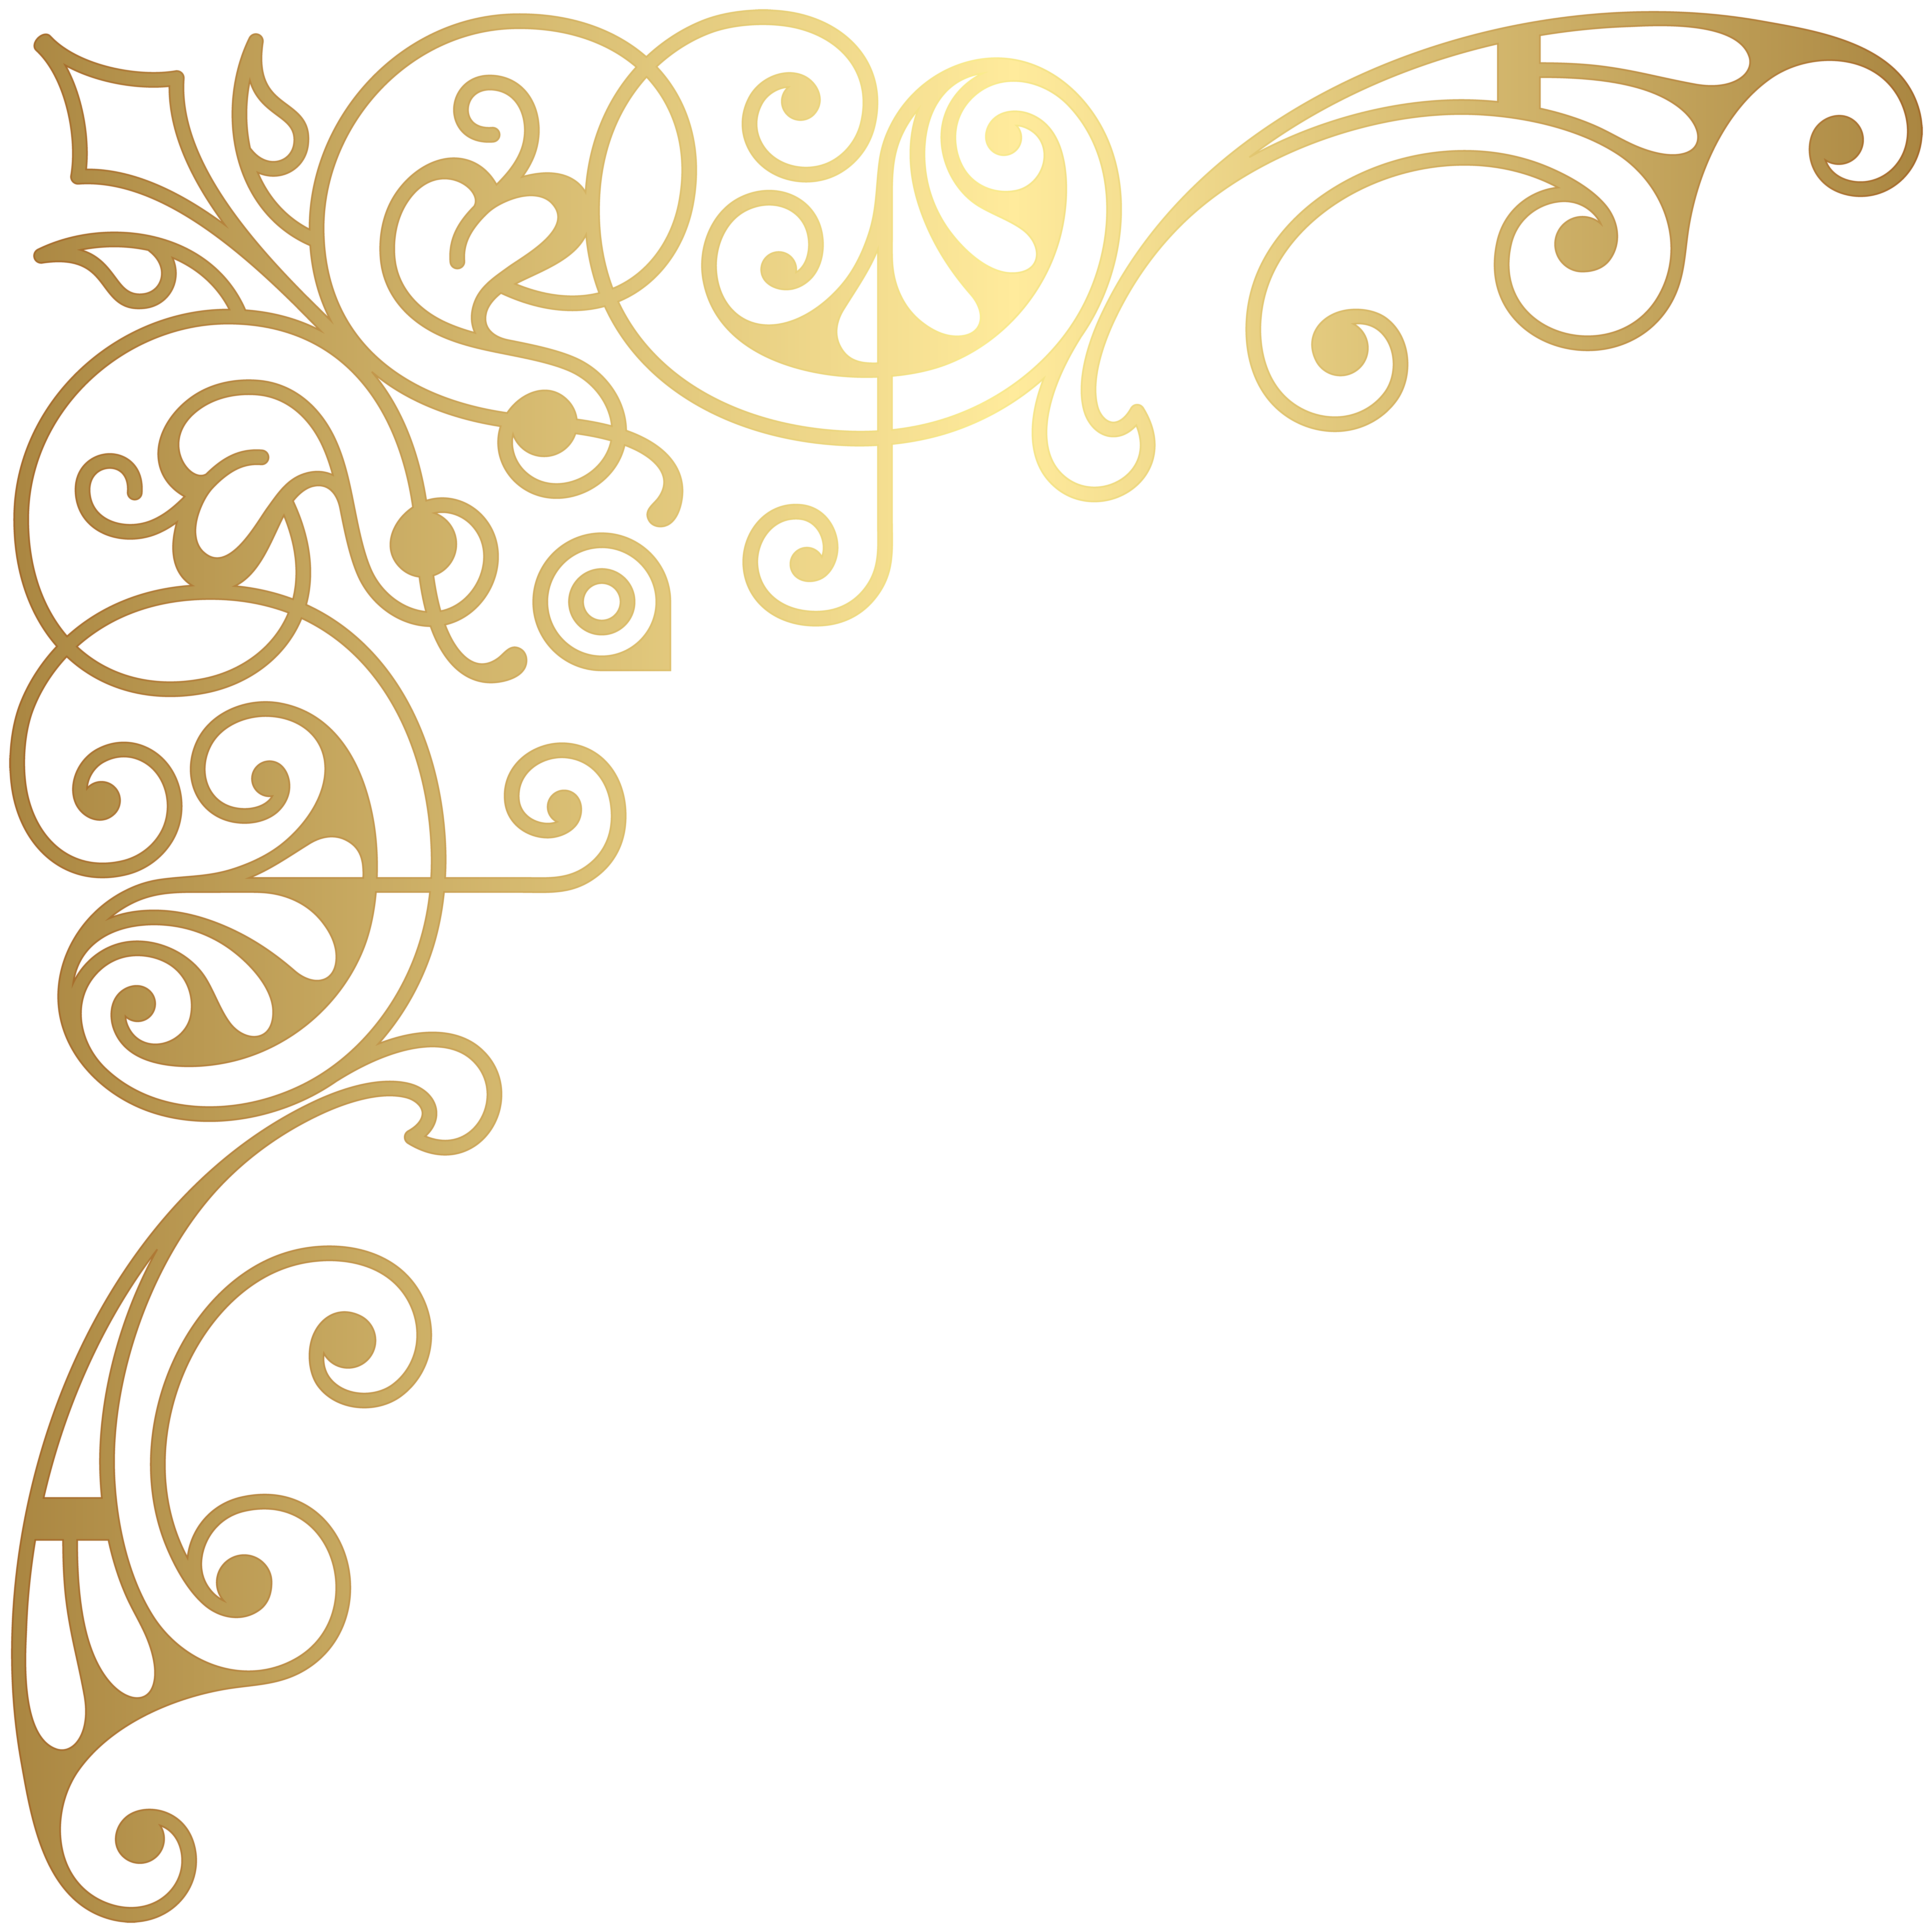 Gold Corner Decorative Transparent Png Clip Art Gallery Yopriceville High Quality Images And Transparent Png Fre Gold Border Design Clip Art Free Clip Art